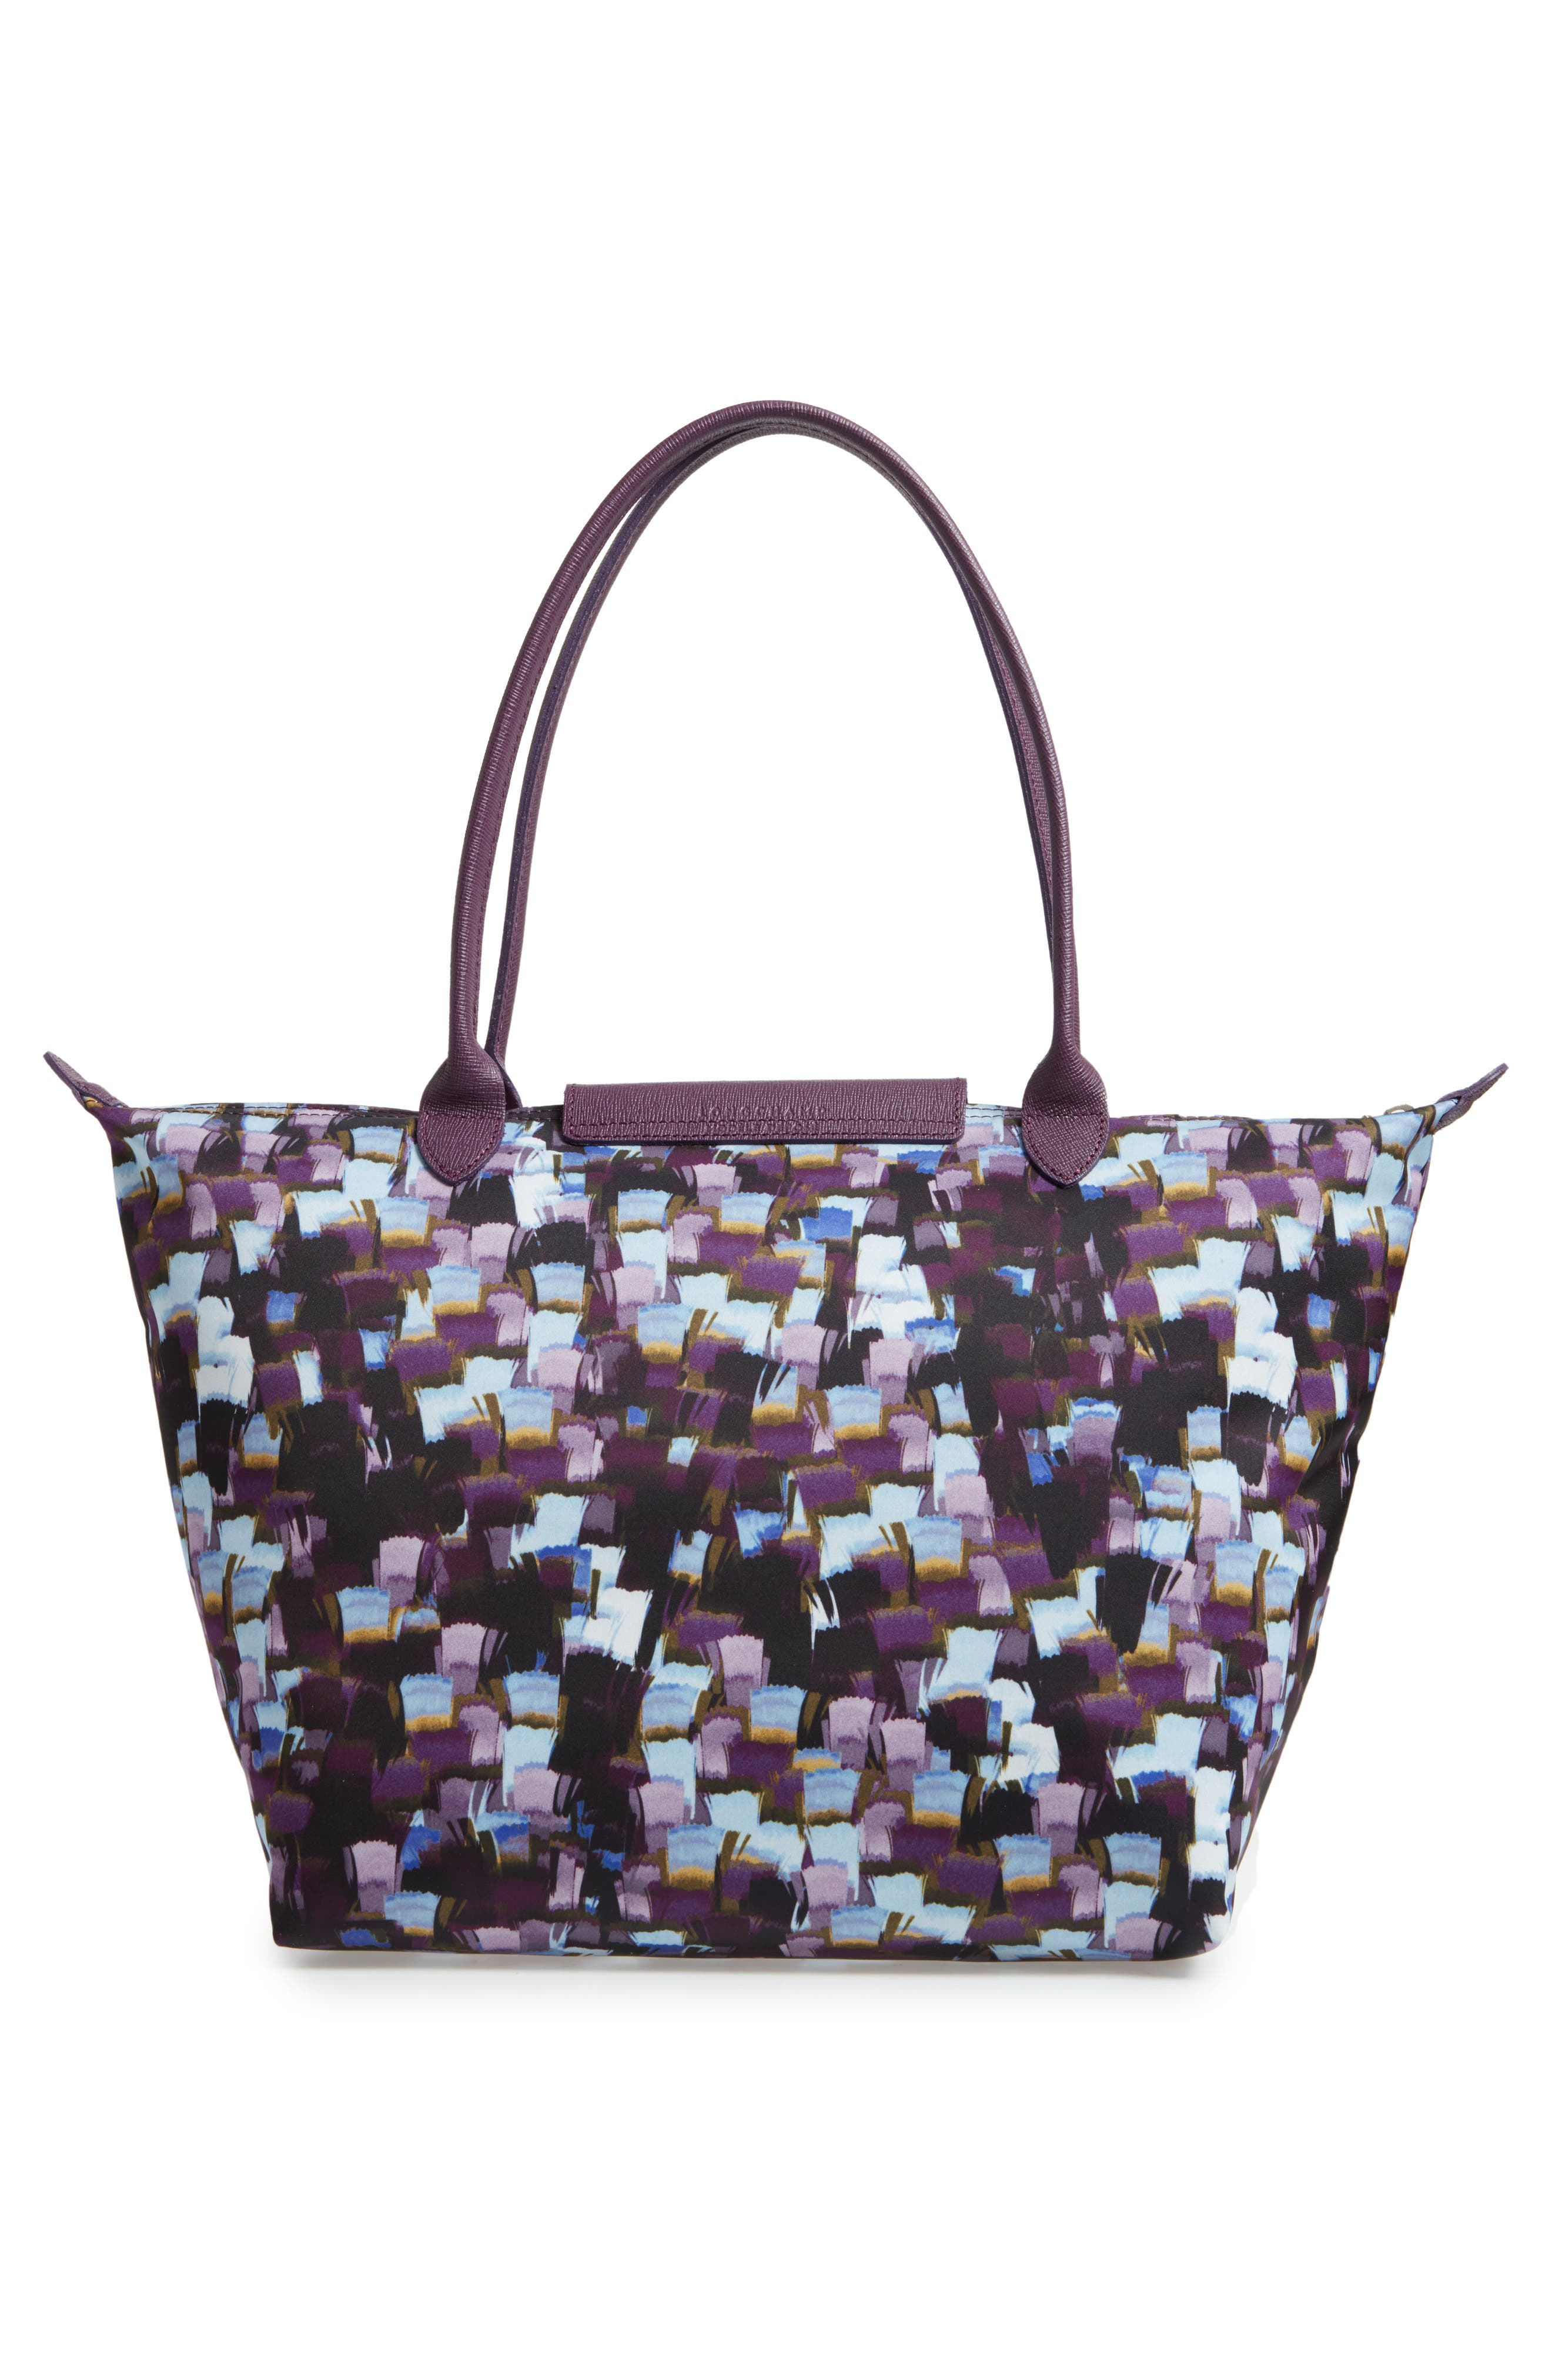 Le Pliage Neo - Vibrations Large Nylon Tote,                             Alternate thumbnail 2, color,                             Deep Purple